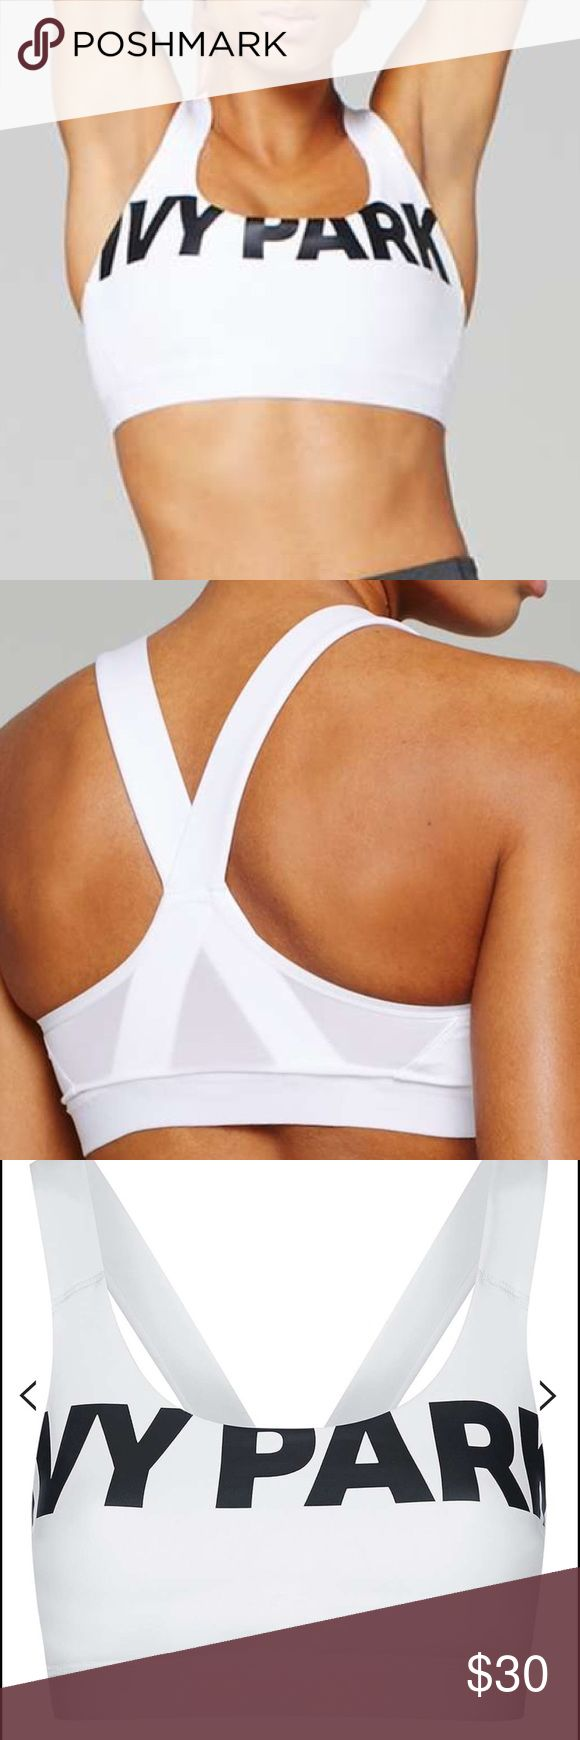 V-Back Mesh Insert Bra By Ivy Park -- WORN ONCE! Fully breathable, the bra top comes designed with both performance and understated style in mind. A sheer mesh panel to the back provides ventilation whilst active, while a power mesh lining and flat-locked contour seam provide a supportive and streamlined shape. Crafted for performance, the technical make ensures a quick drying and durable finish that wicks sweat away. Finished with a statement Ivy Park logo to the chest it can be worn alone…